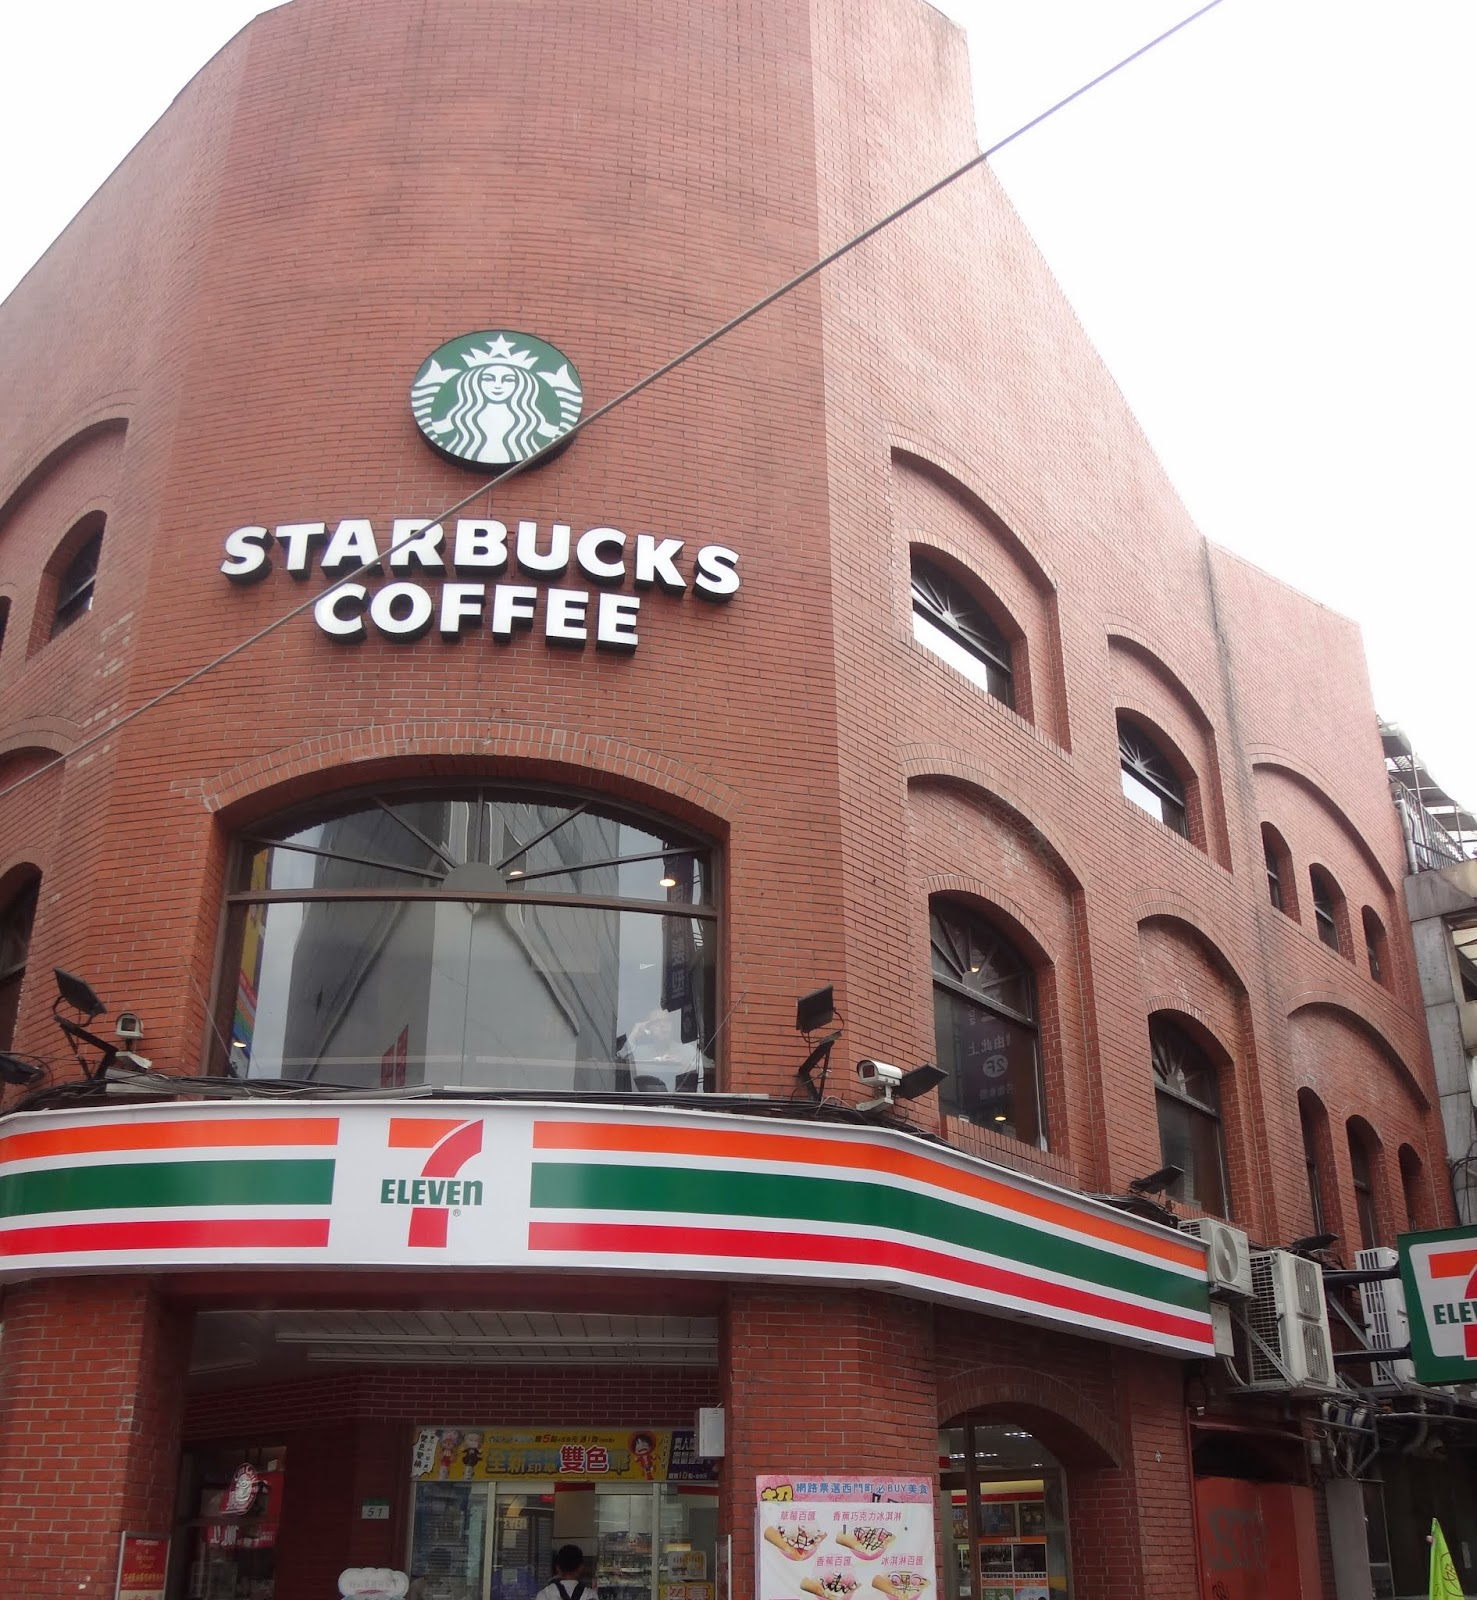 The main landmark to search Via Hotel is by searching for Starbucks Coffee and 7 Eleven as they are located opposite of Uniqlo in Ximending busy streets of Taipei, Taiwan